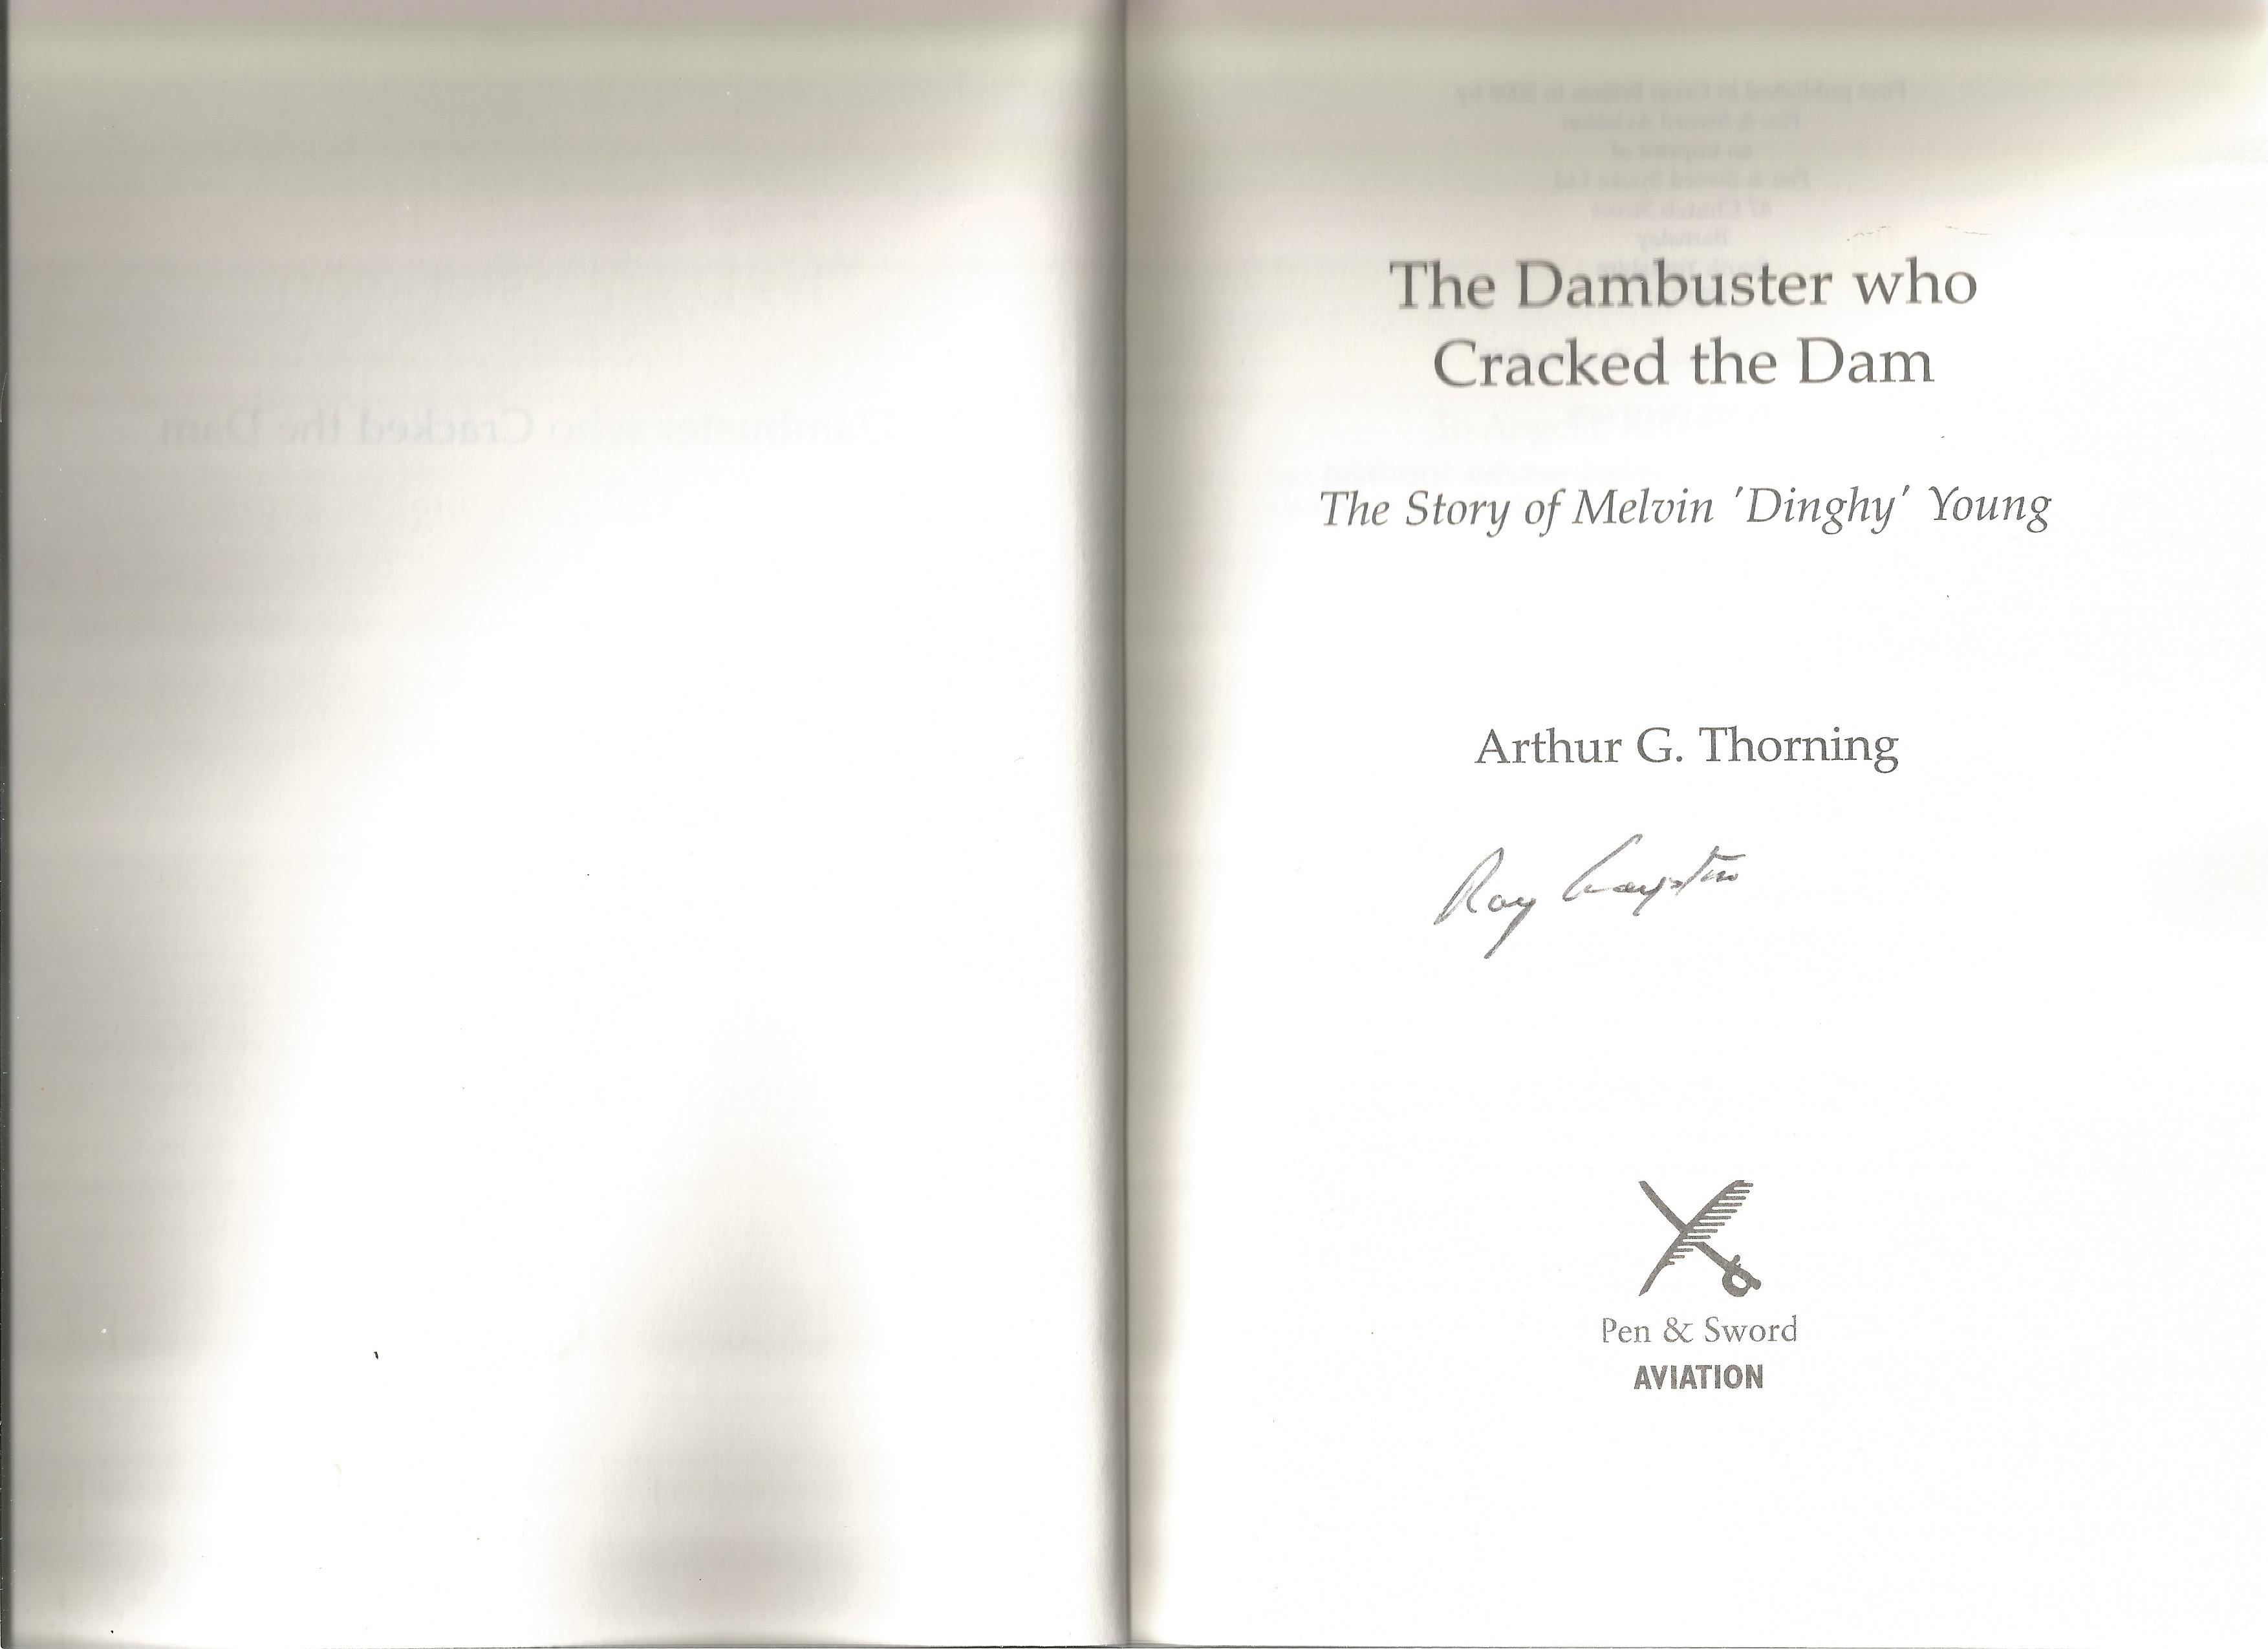 Arthur G Thorning. The Dambuster Who Cracked The Dam the story of Melvin Dinghy Young. A WW2 First - Image 2 of 3